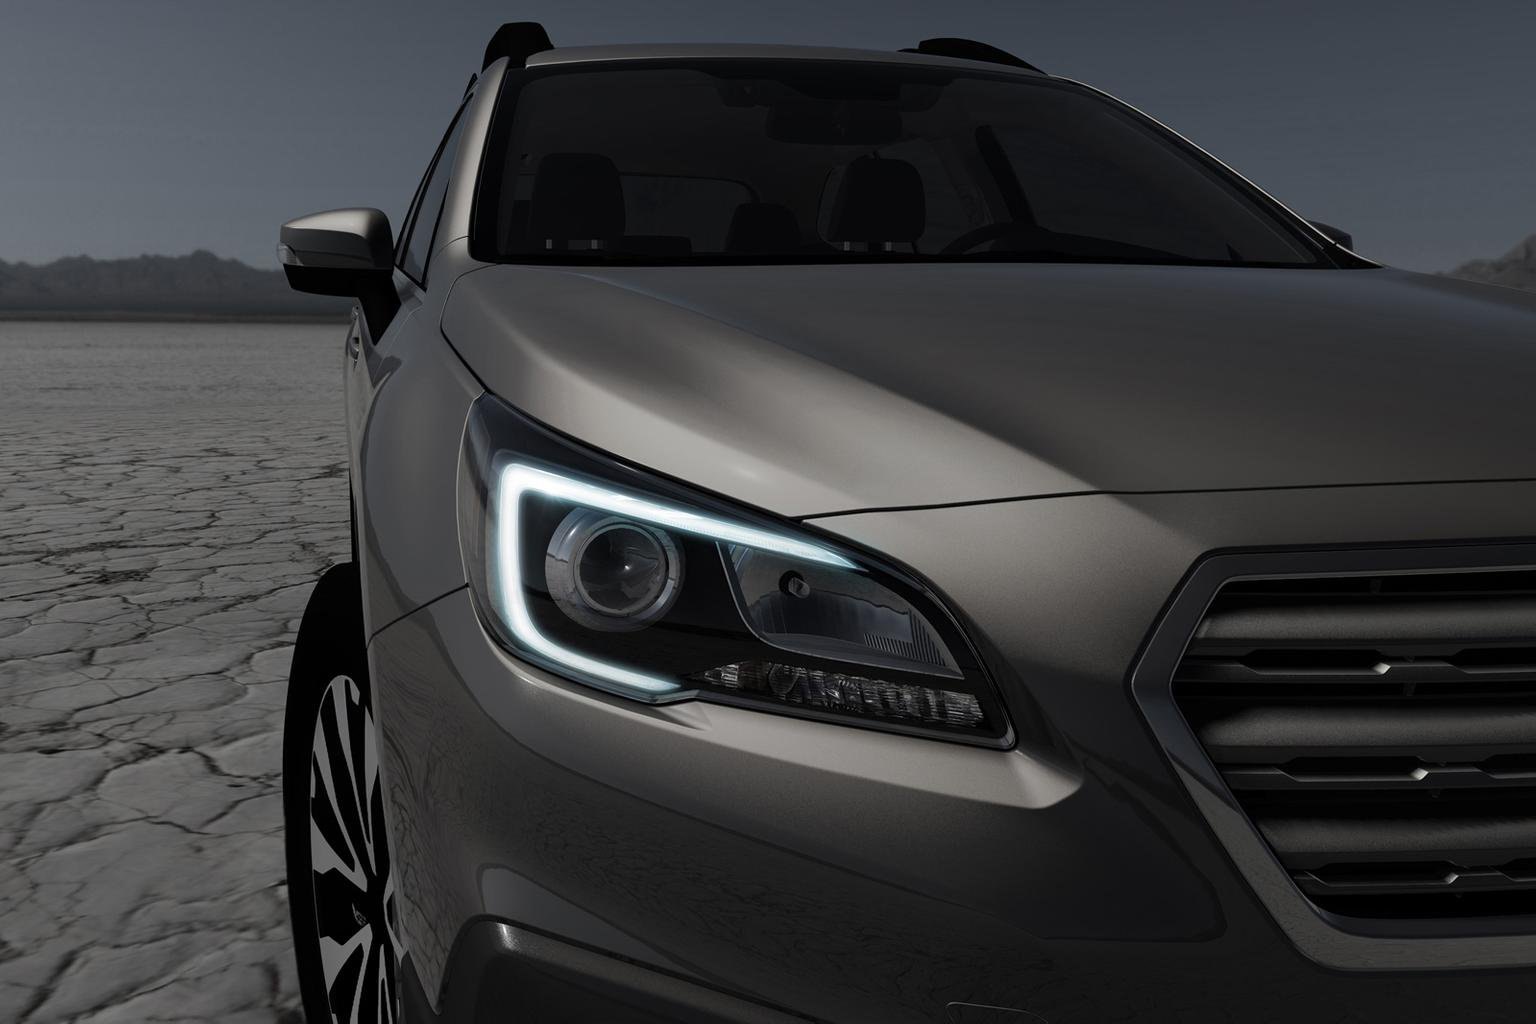 News roundup: Subaru Outback to appear at New York show